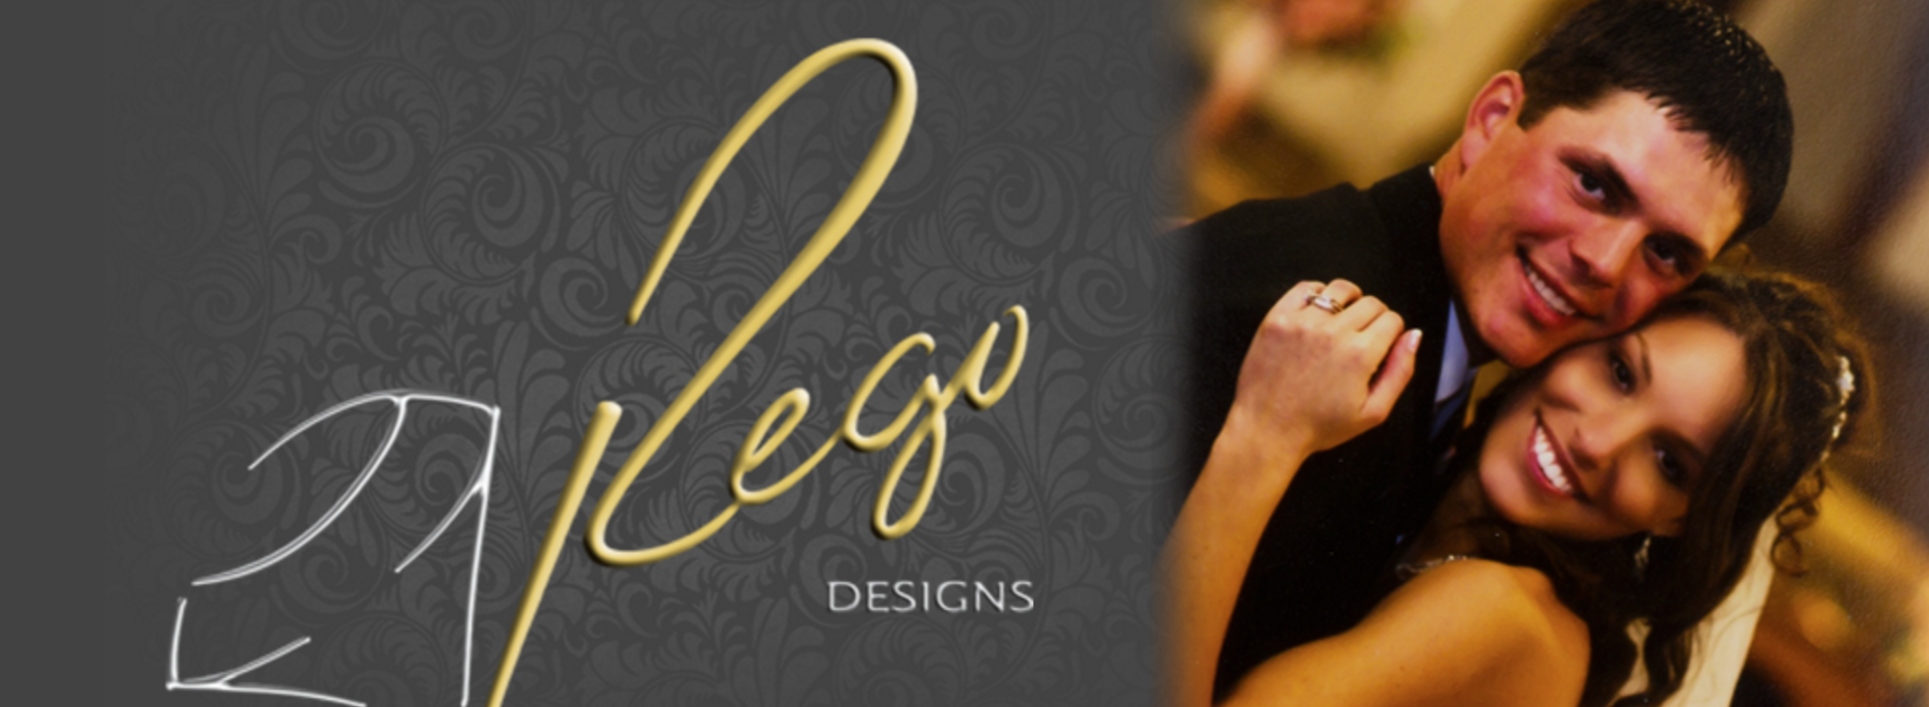 Bowers Jewelers Rego Designs